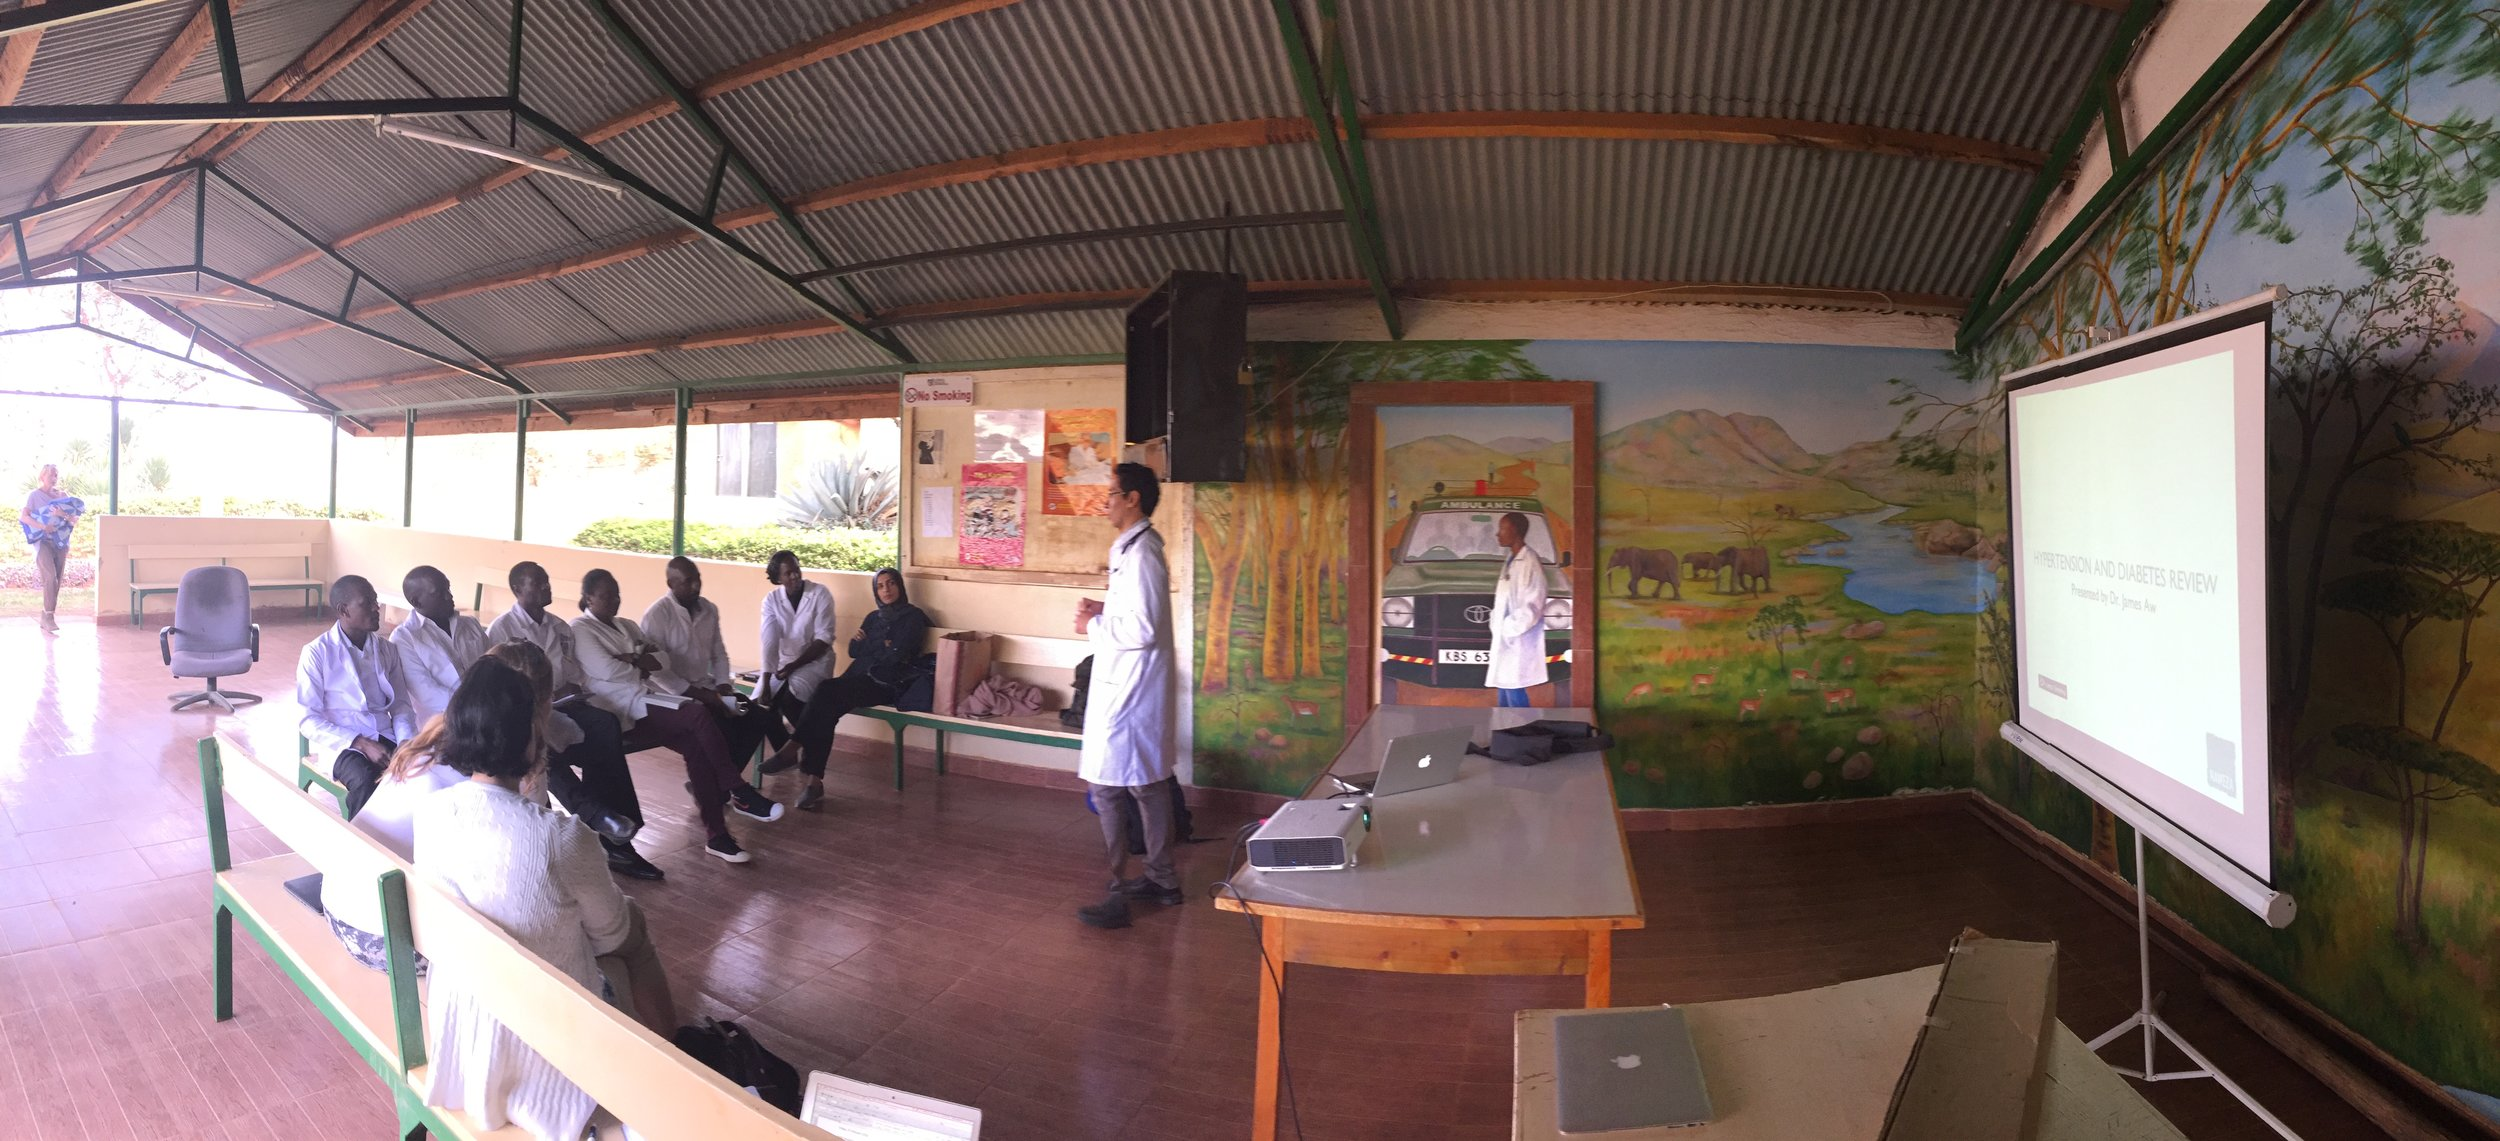 Dr. James starts off the CME sessions in a open-air lounge area on the grounds of the Lewa clinic